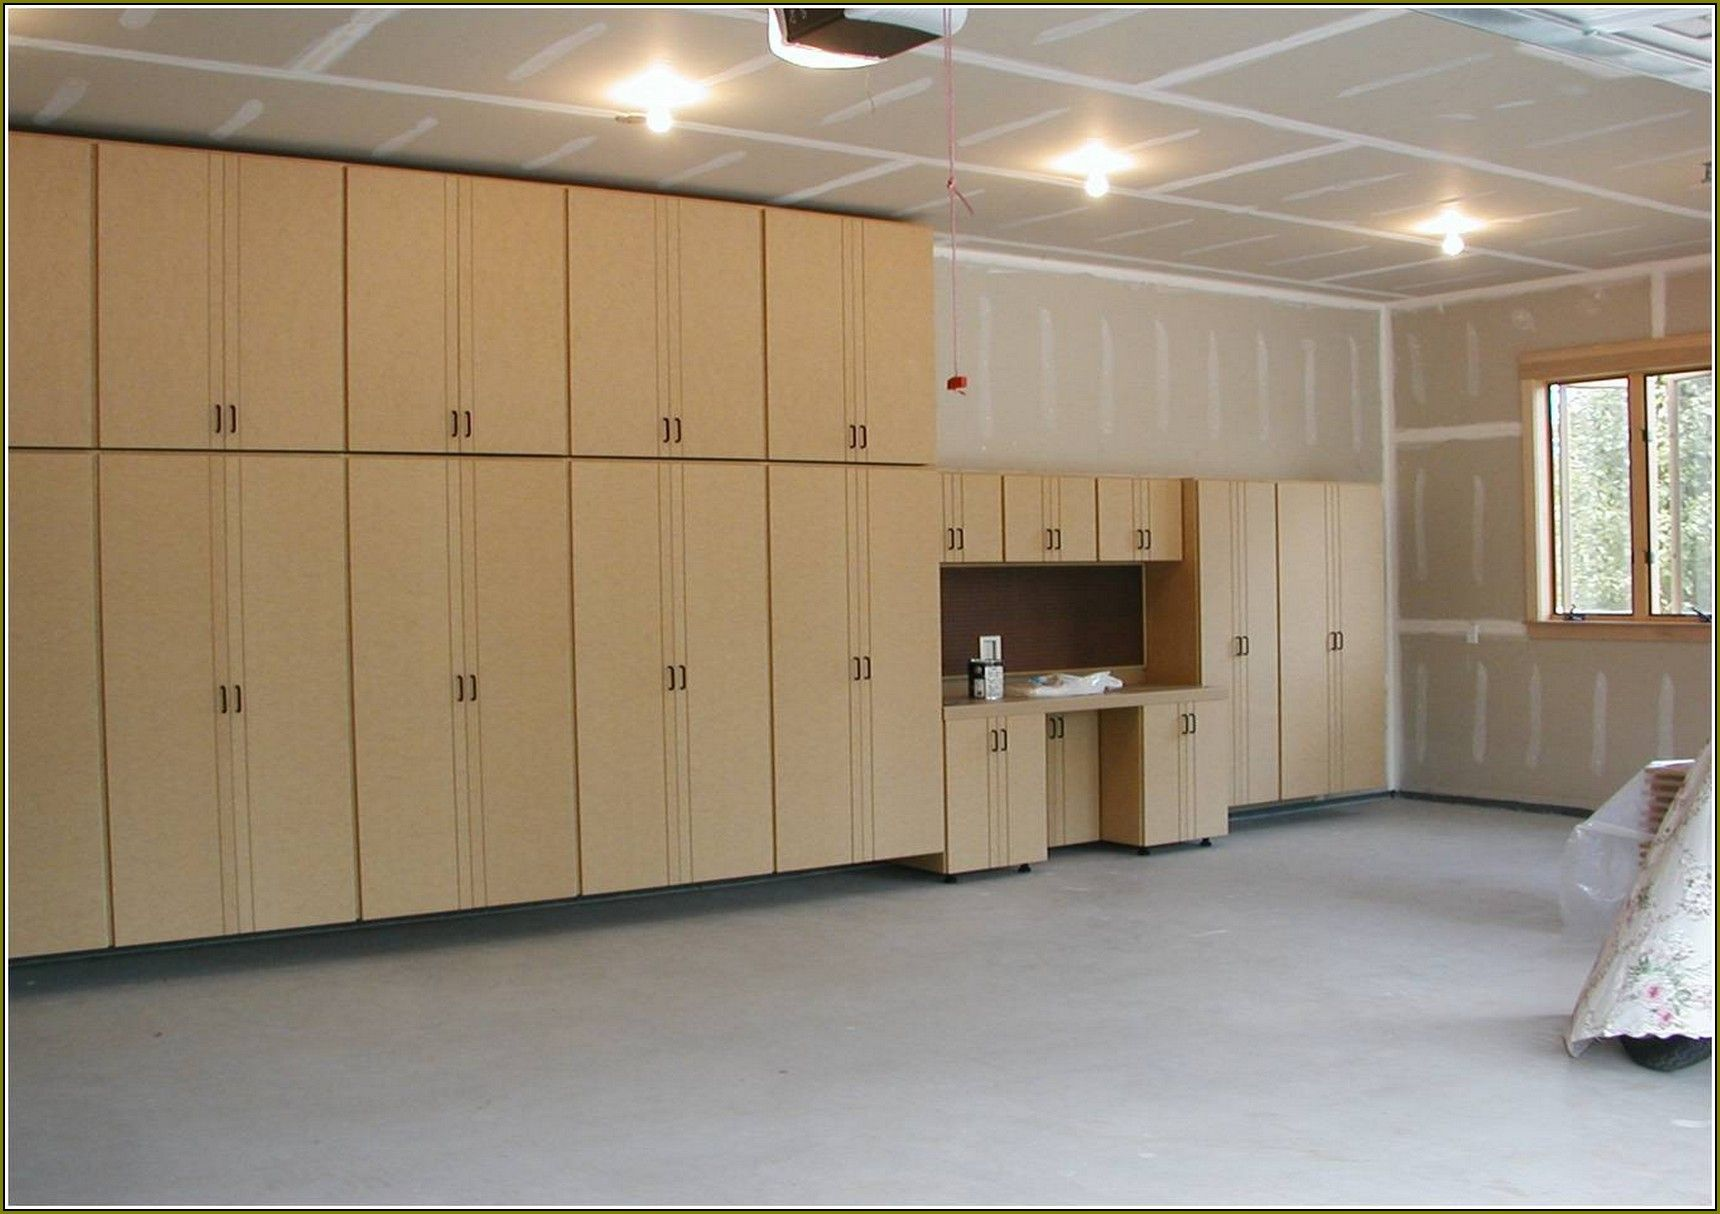 Diy Garage Cabinets To Make Your Garage Look Cooler Diy Garage - Cabinets in garage